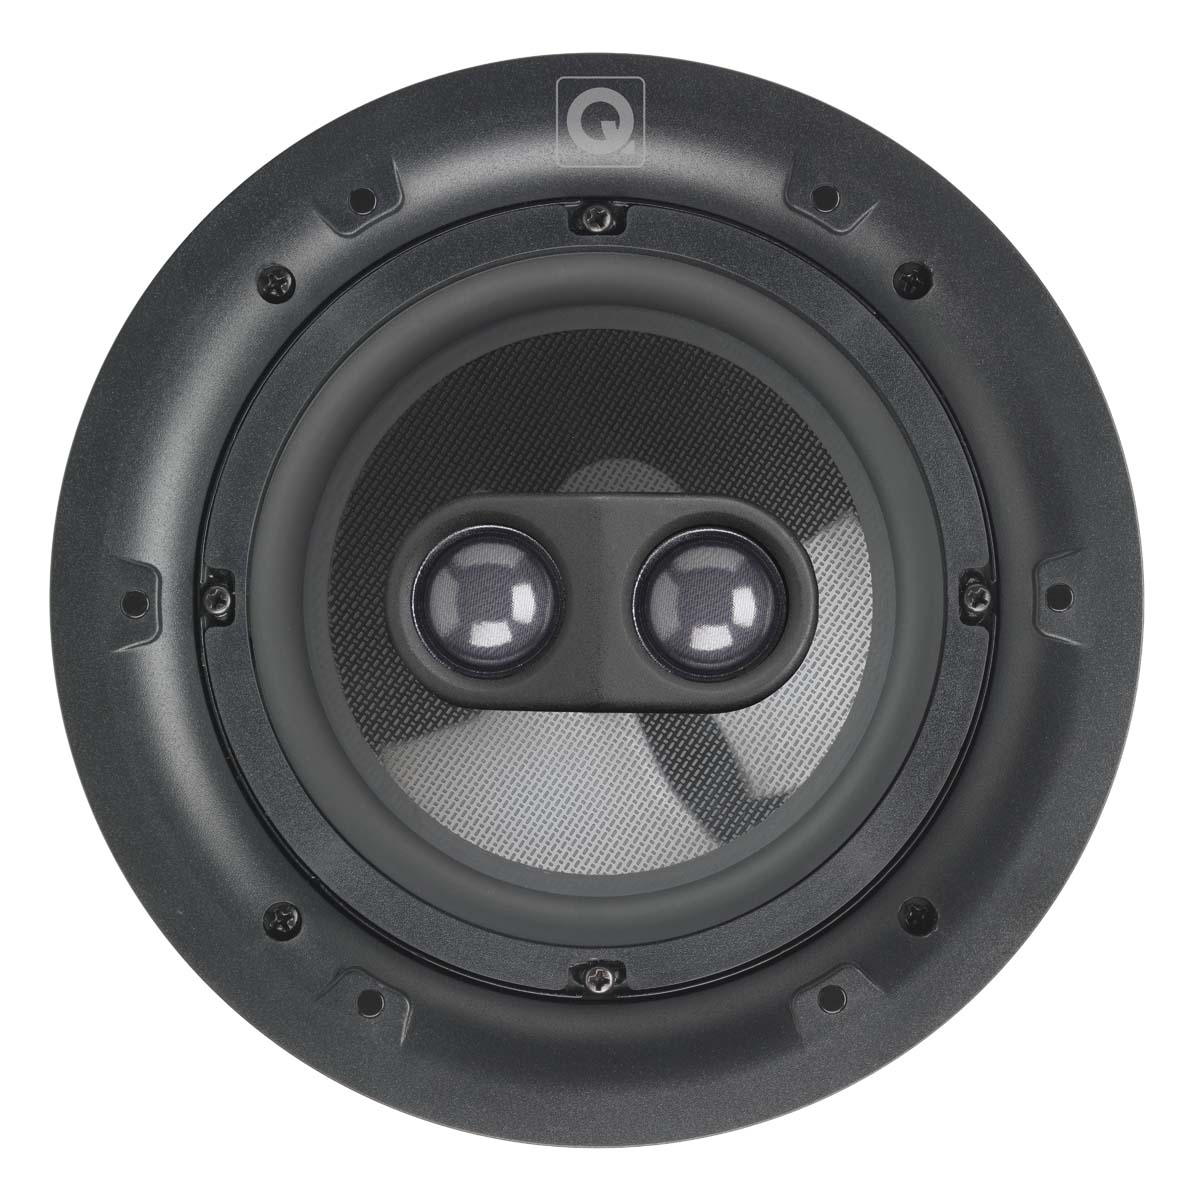 Q-Acoustics Qi65SP STEREO Ceiling Speaker